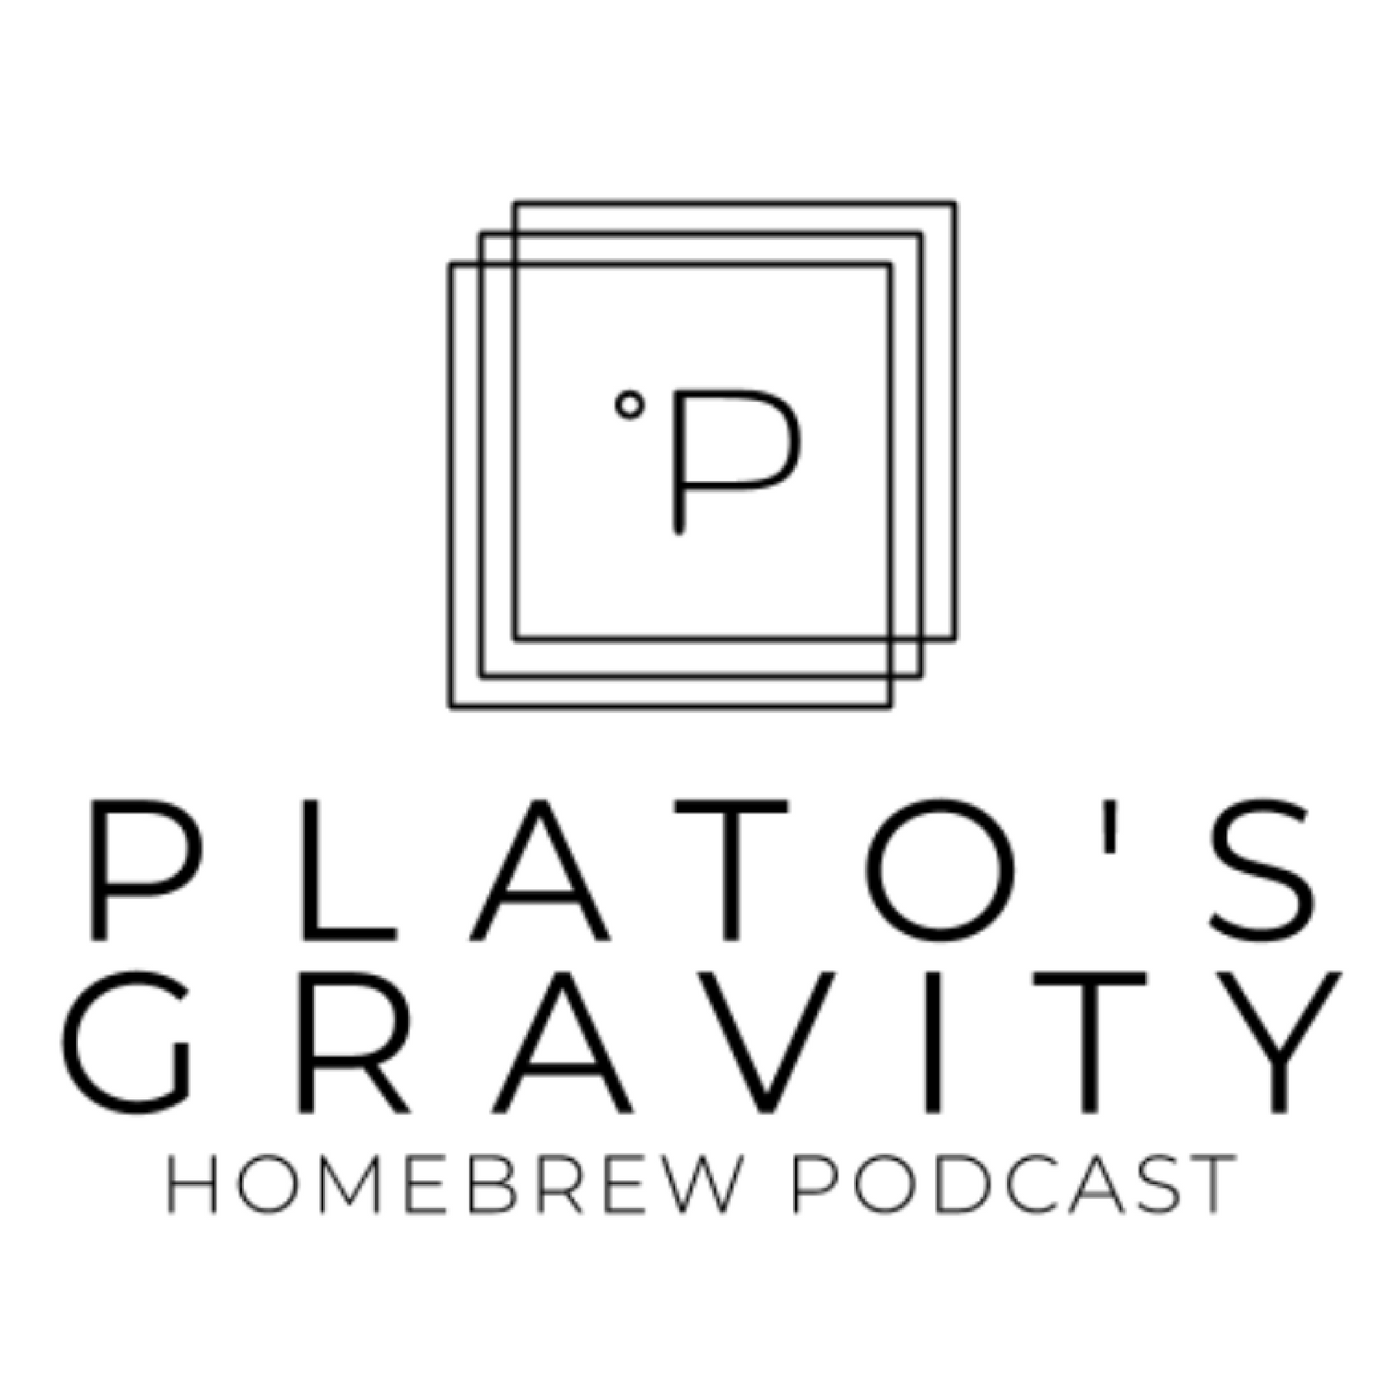 Plato's Gravity Homebrew Podcast